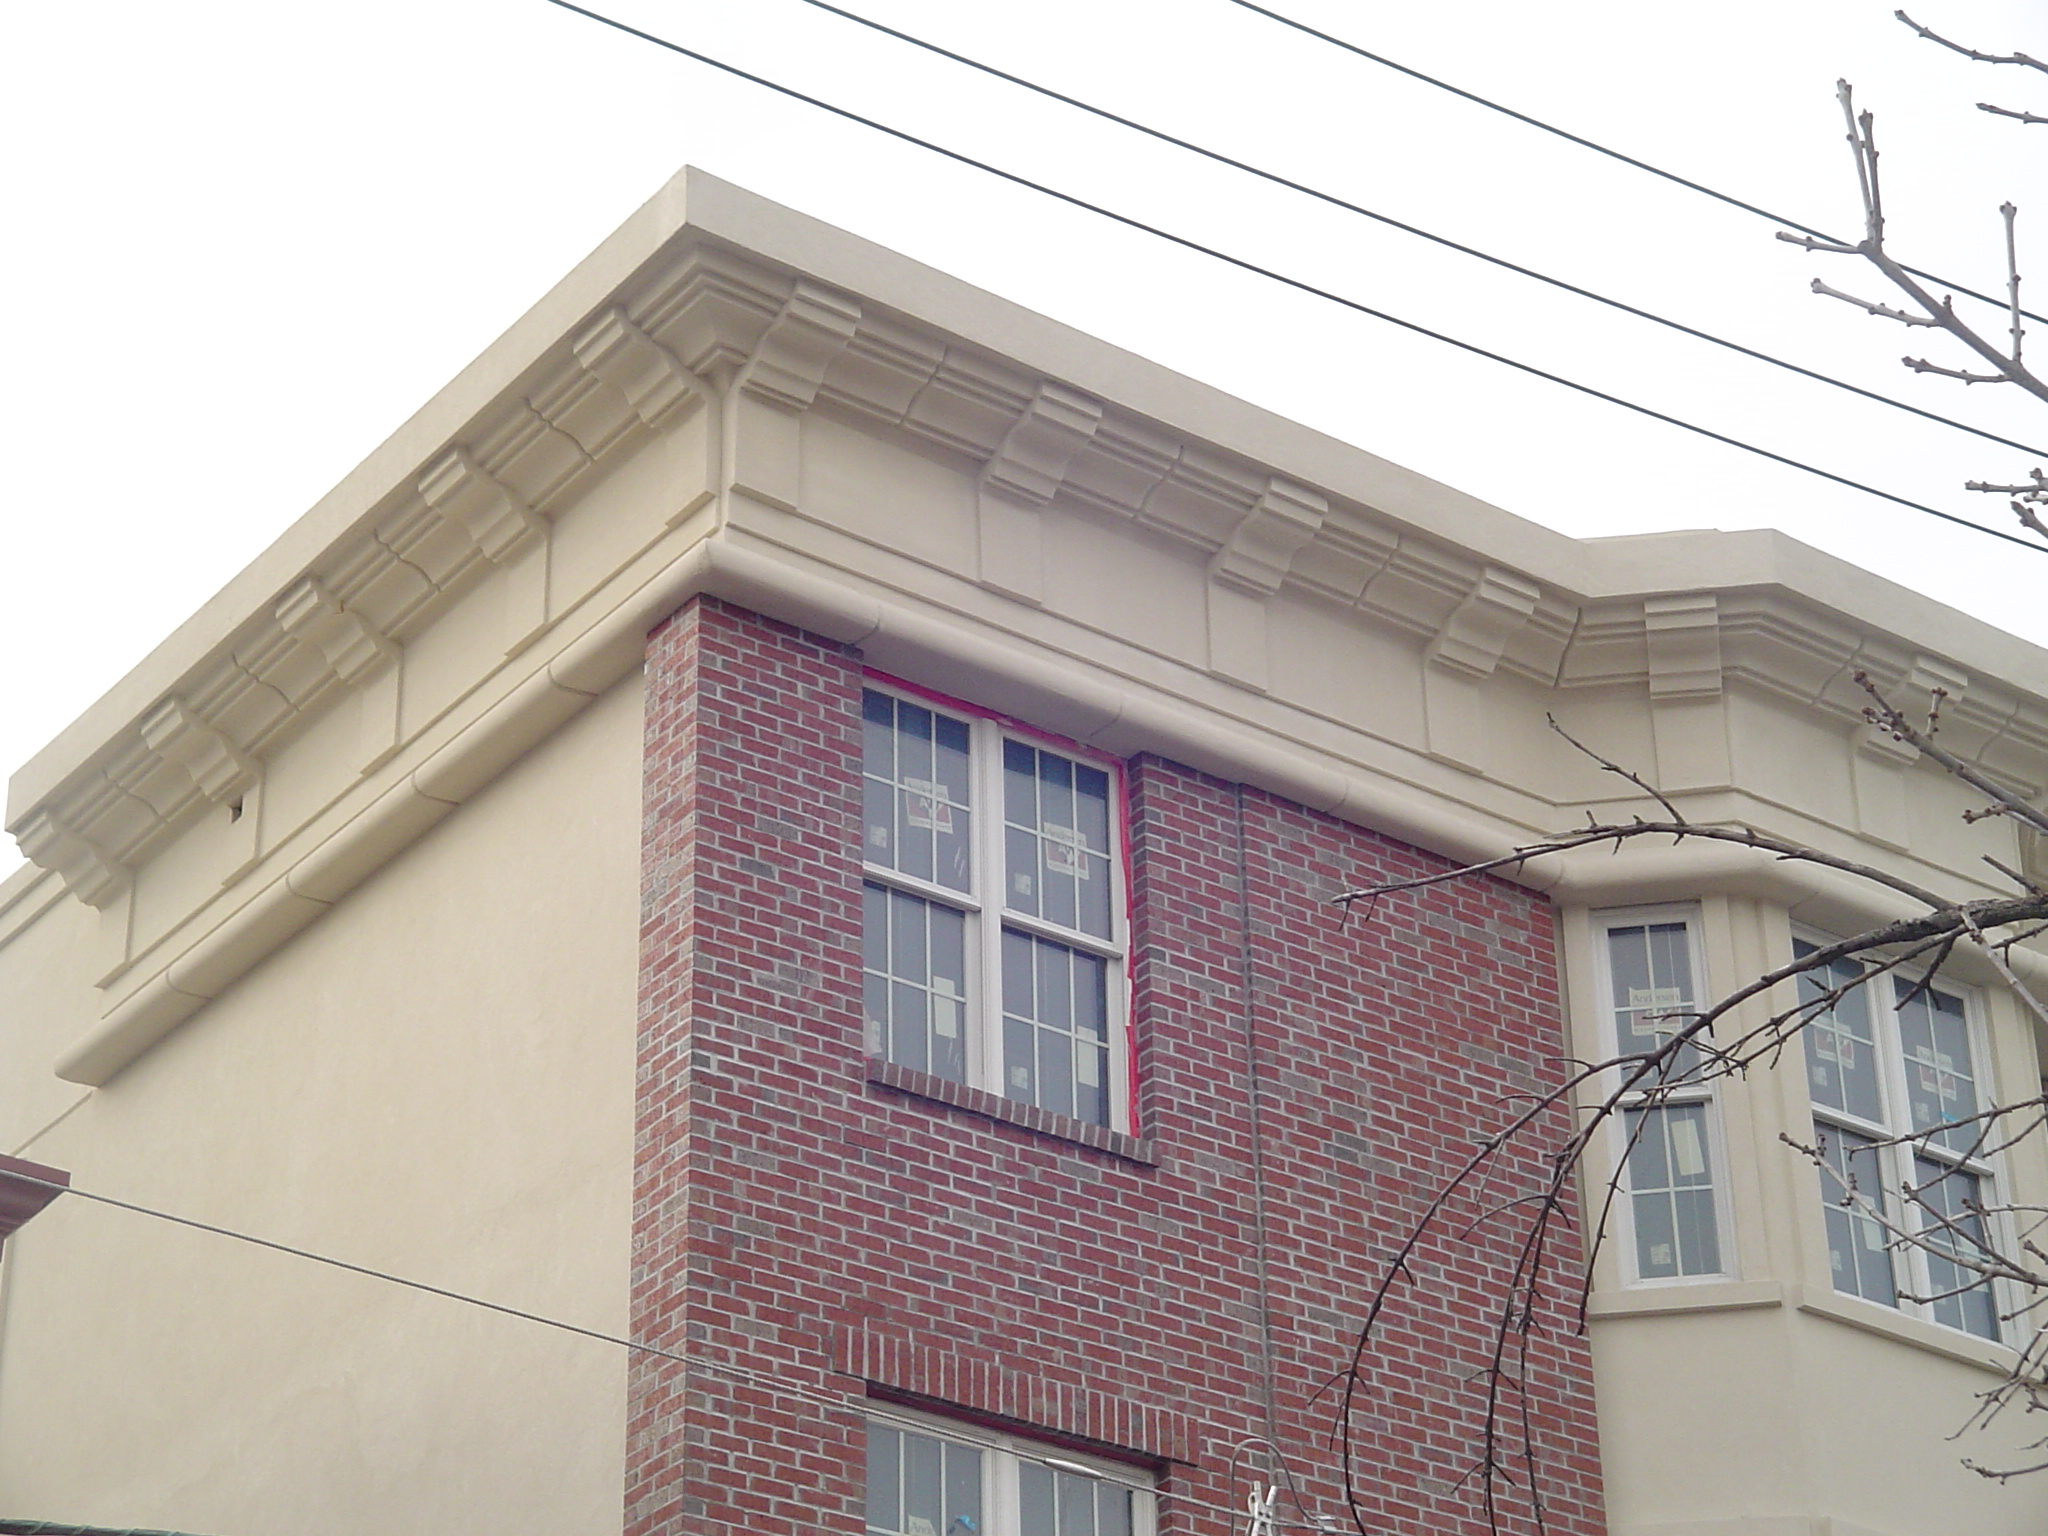 Custom Cornice Trim and Stucco inHudson County